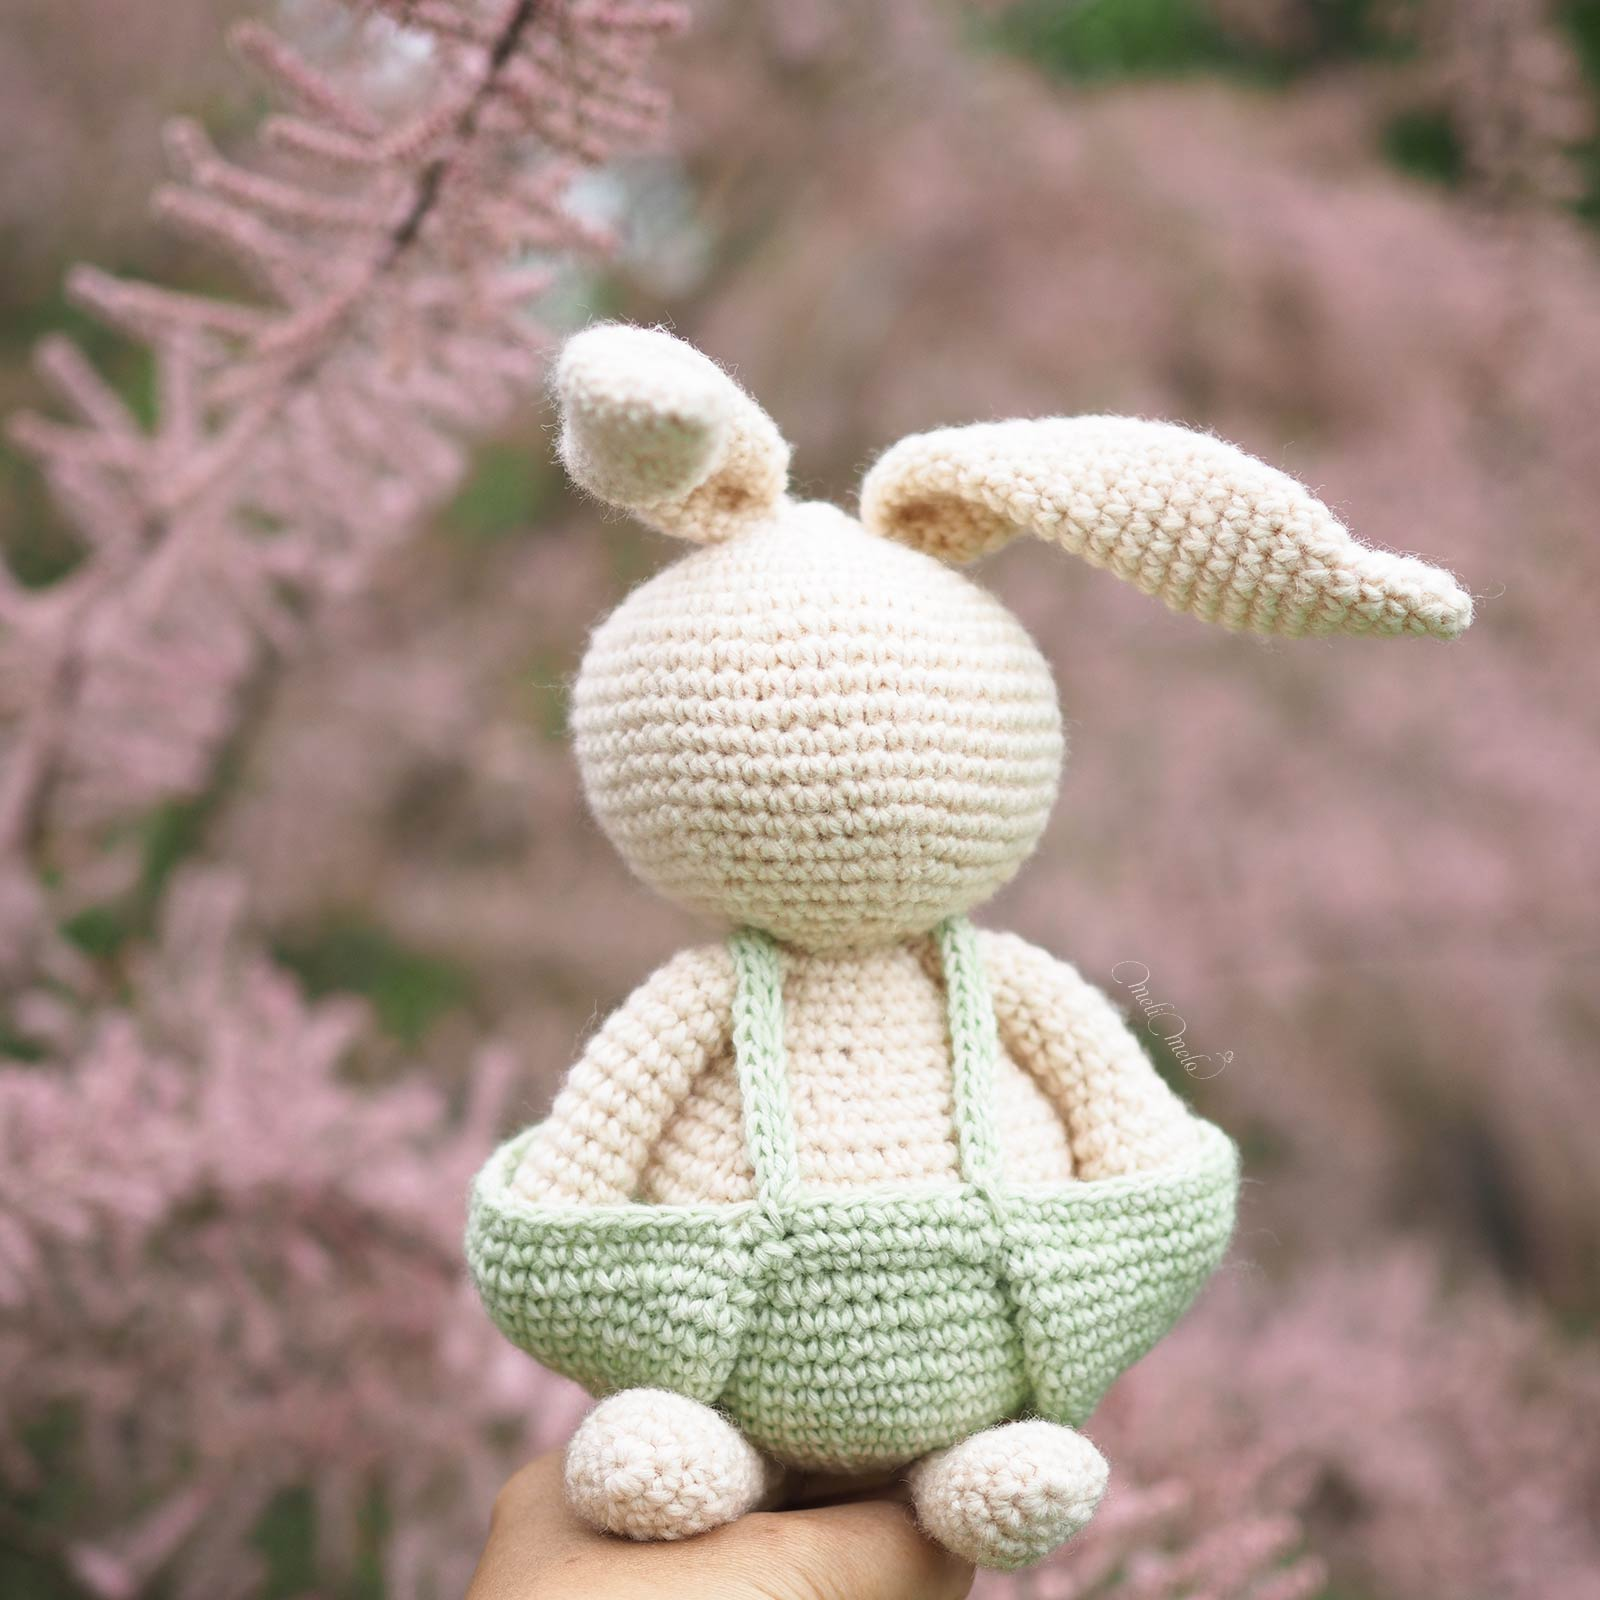 stone-washed-scheepjes-oliver-lapin-amigurumi-naturacrochet-laboutiquedemelimelo